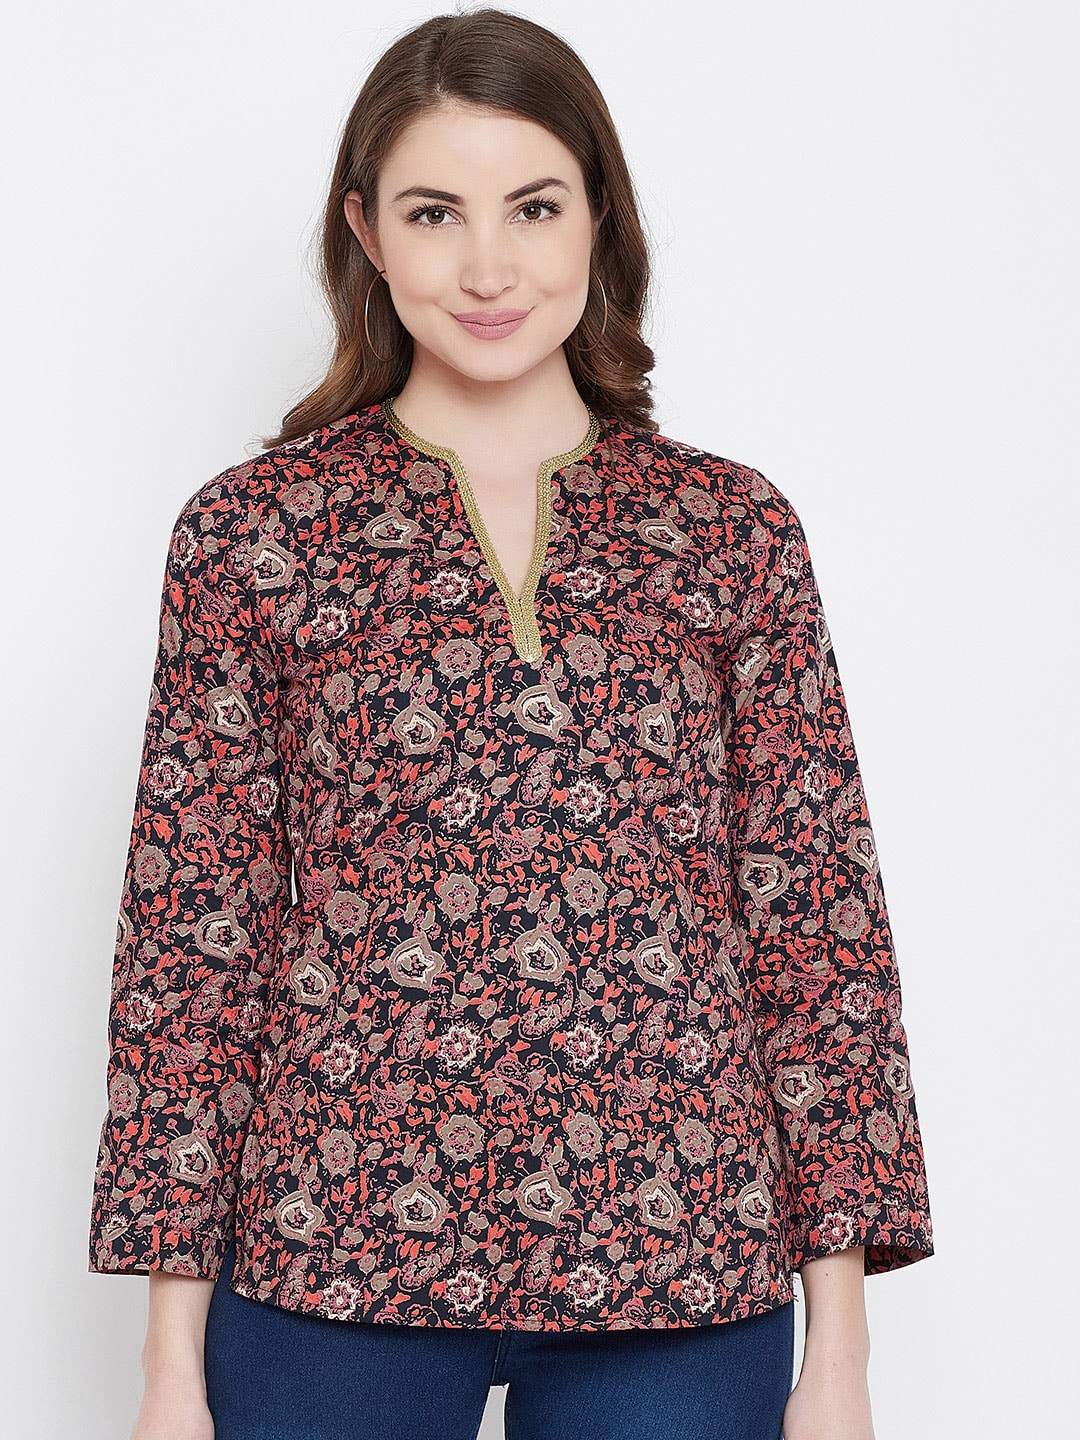 e11ccd0c05 Ethnic Tops - Buy Ethnic Wear for Women Online in India